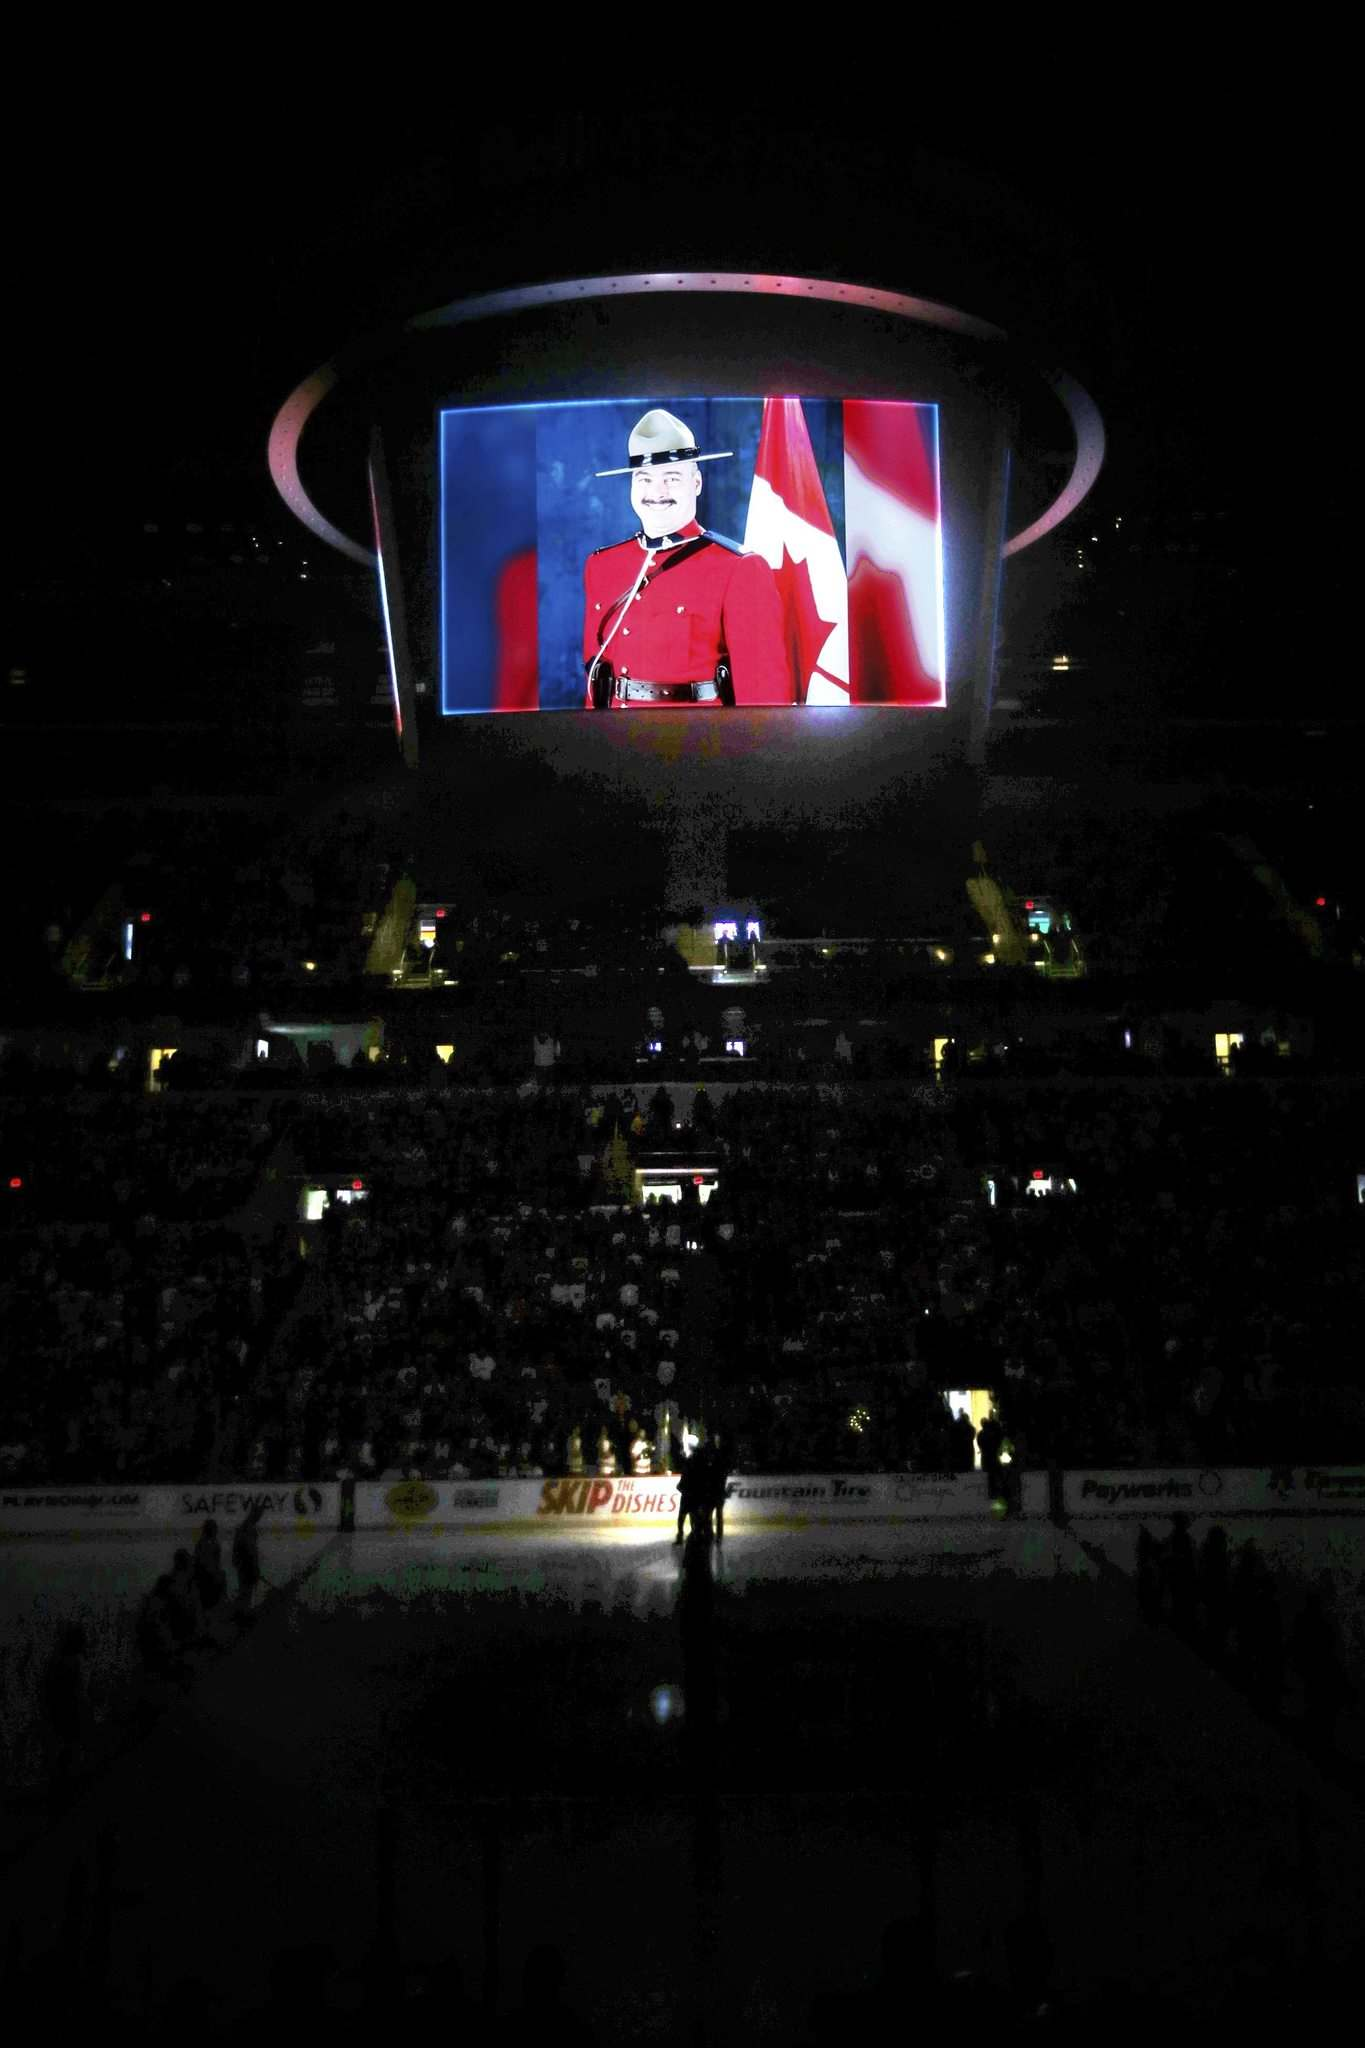 JOHN WOODS / WINNIPEG FREE PRESS</p><p>Const. Allan Poapst, who was killed in a collision while on duty, is honoured at the Winnipeg Jets game Sunday at Bell MTS Place.</p></p>